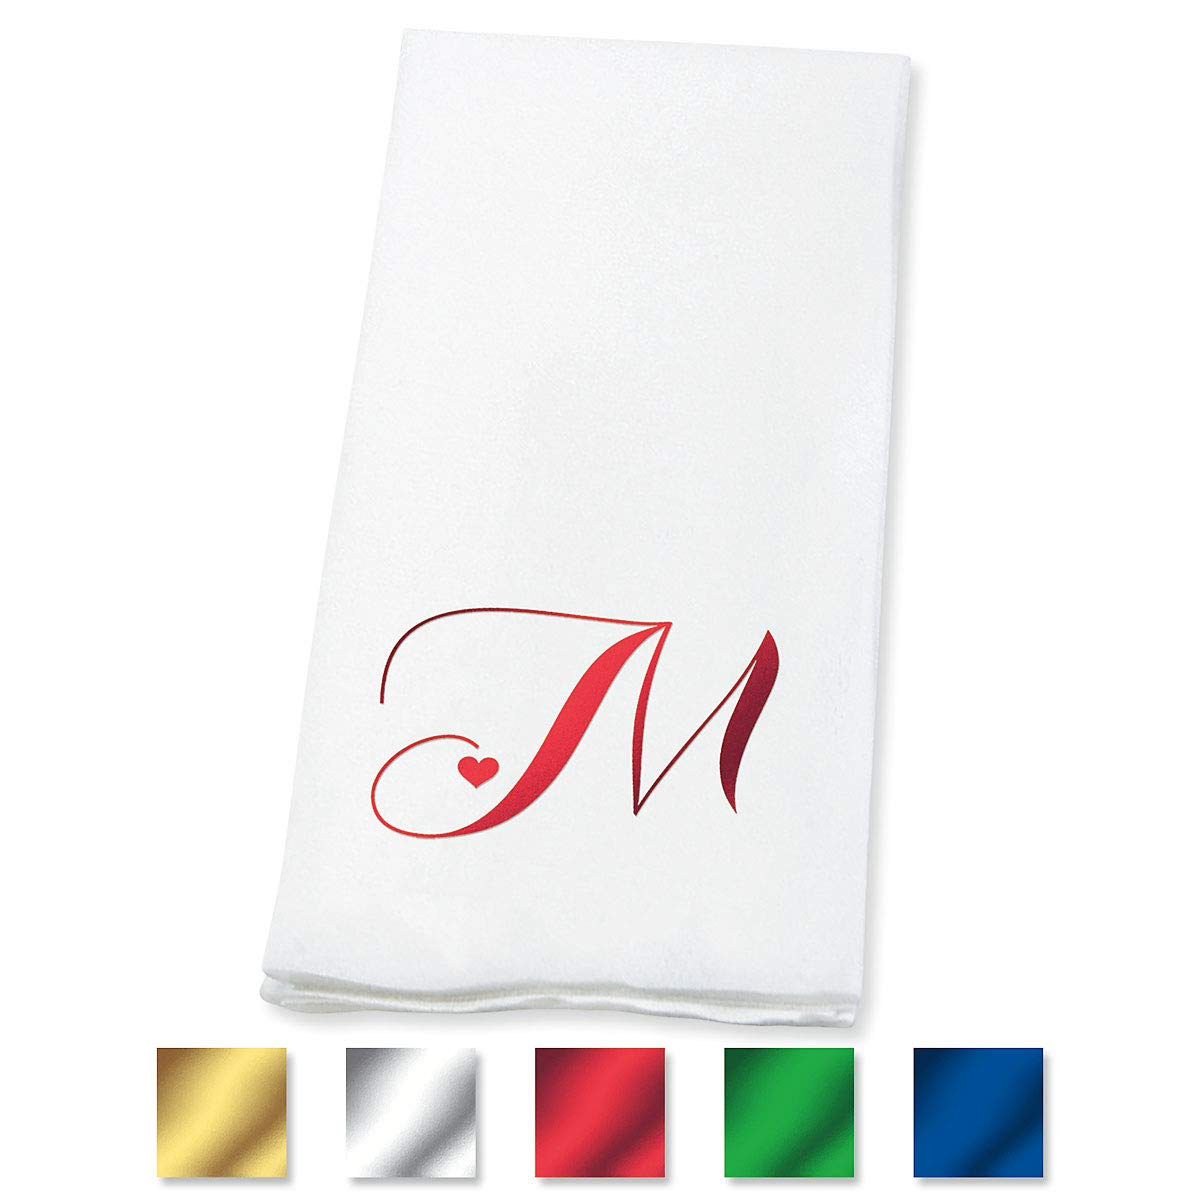 Lillian Vernon Heart Initial Guest Hand Towels (Count: 100 Pre-Folded Towels) Disposable 50% Cotton 50% Paper Blend, Monogram in Red, Blue, Gold, Green or Silver, Wedding Party, Anniversary Party